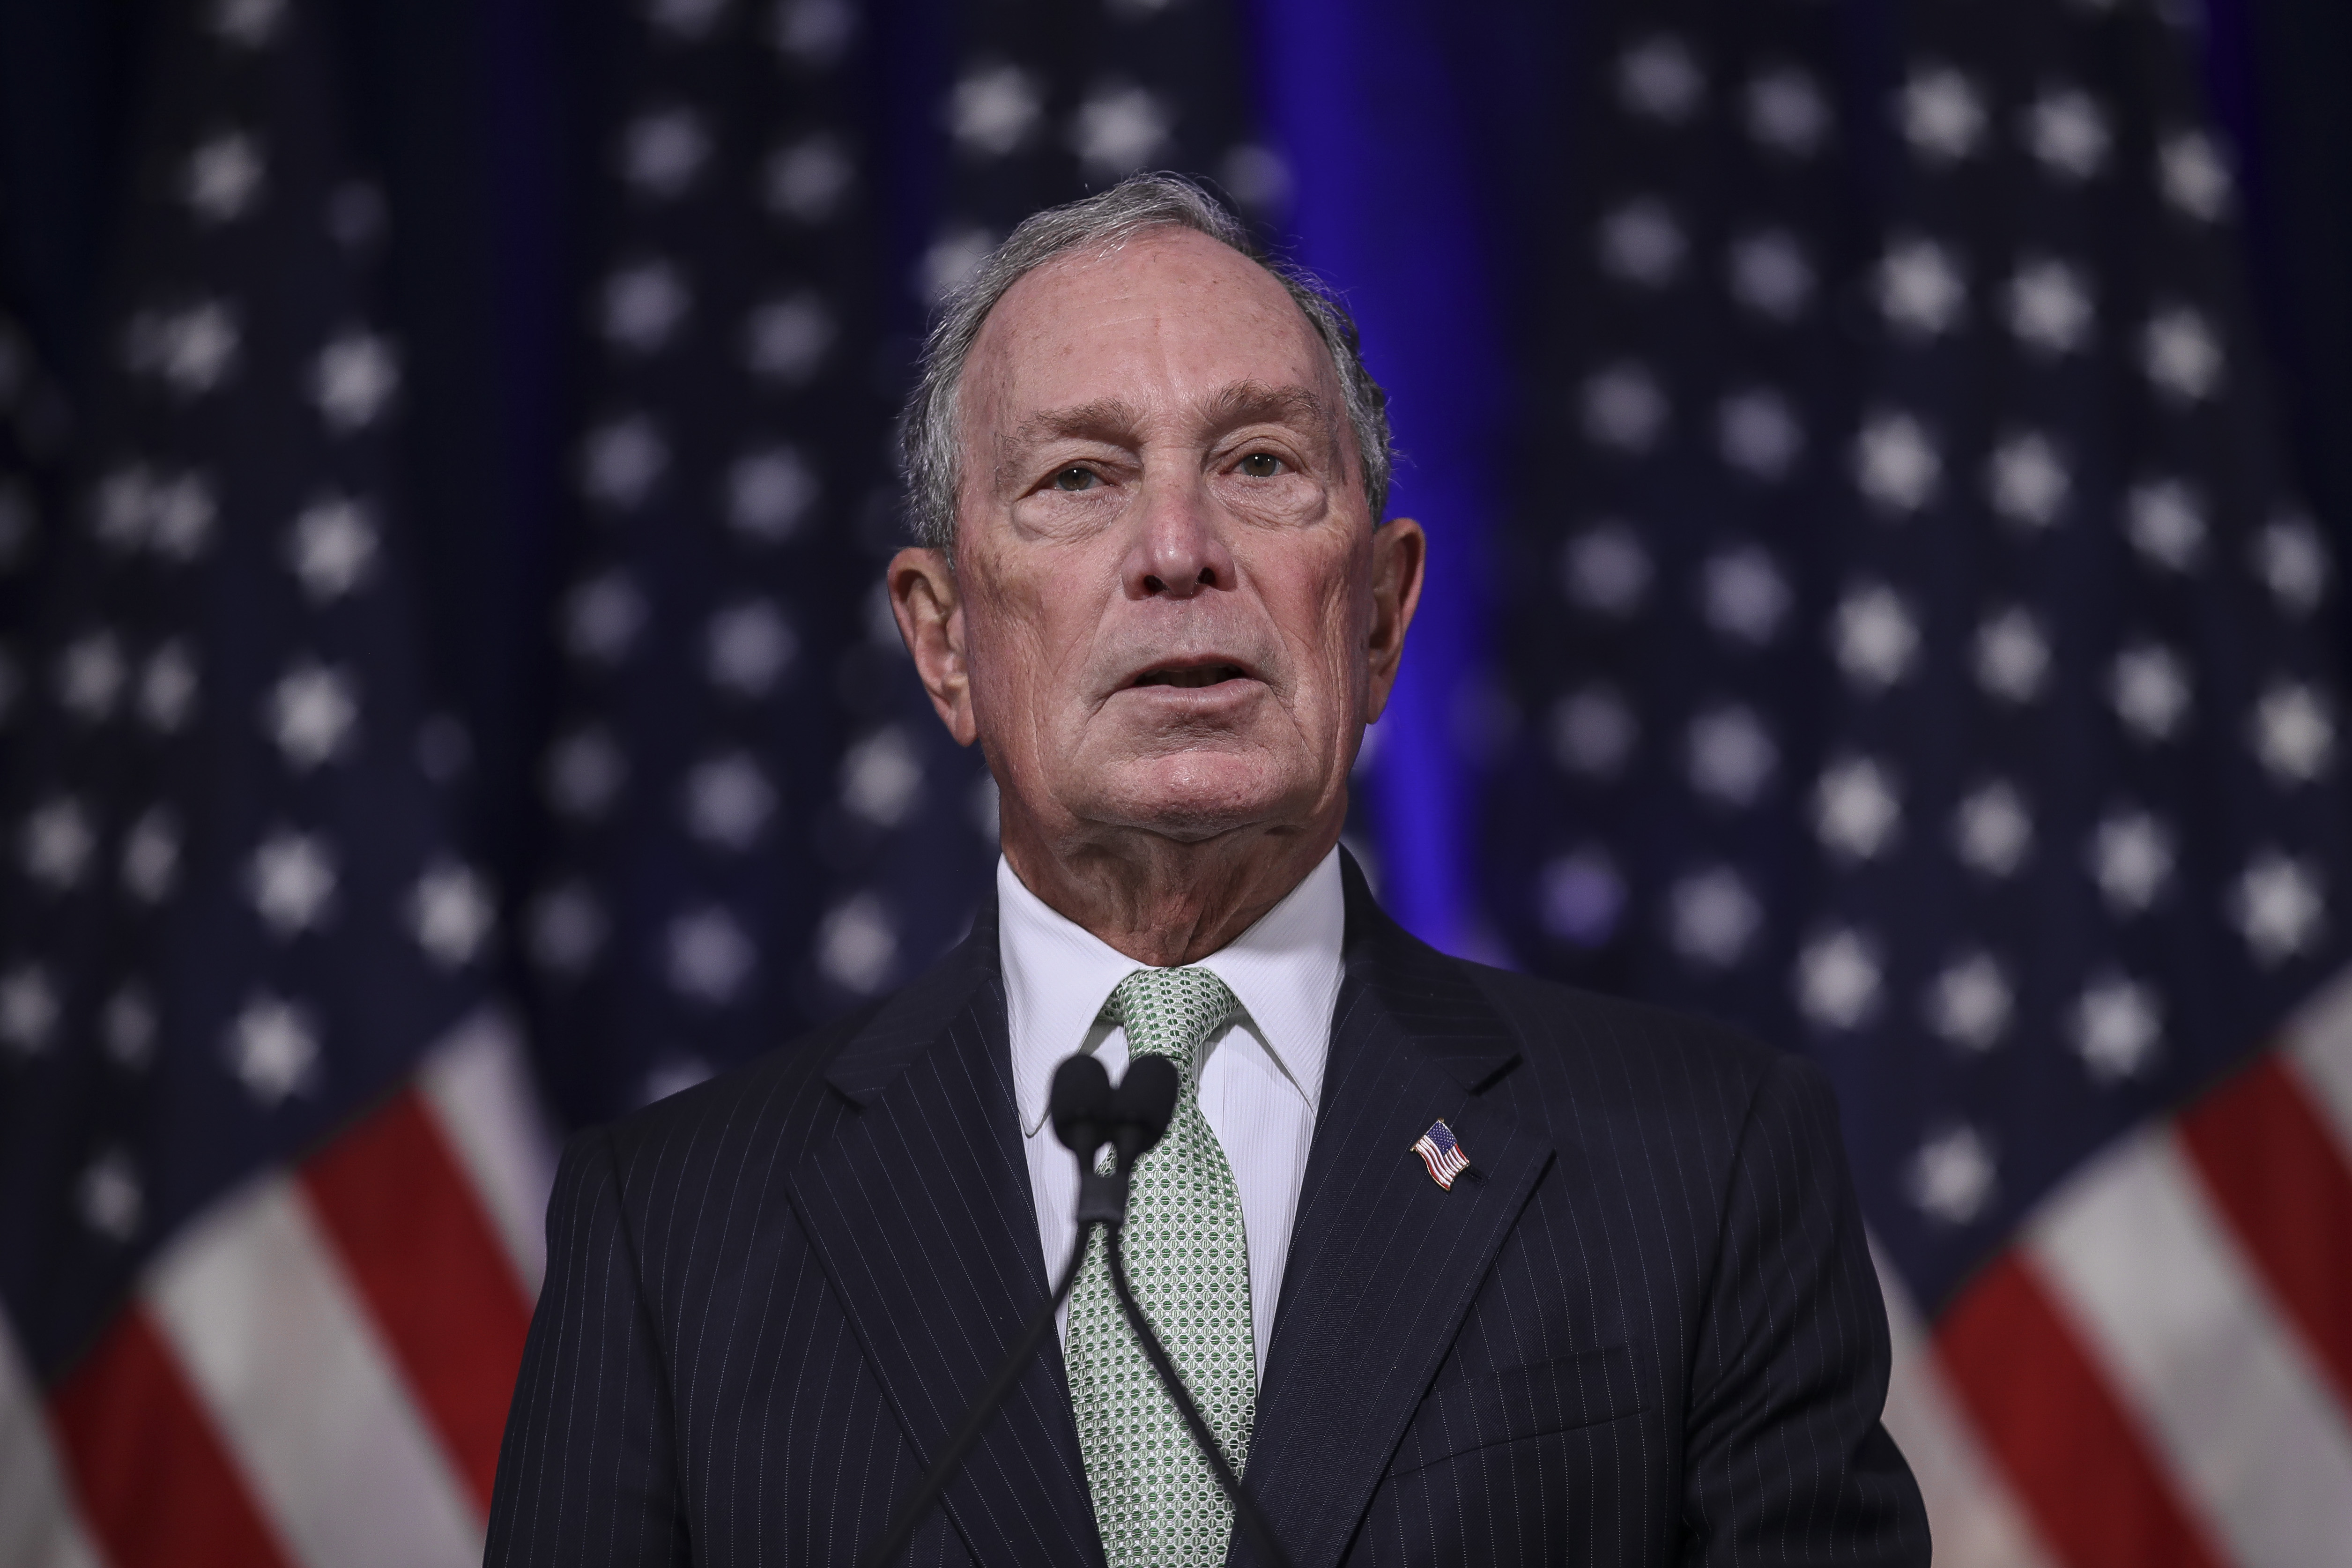 Democratic presidential candidate, former New York Mayor Michael Bloomberg (Photo by Drew Angerer/Getty Images)